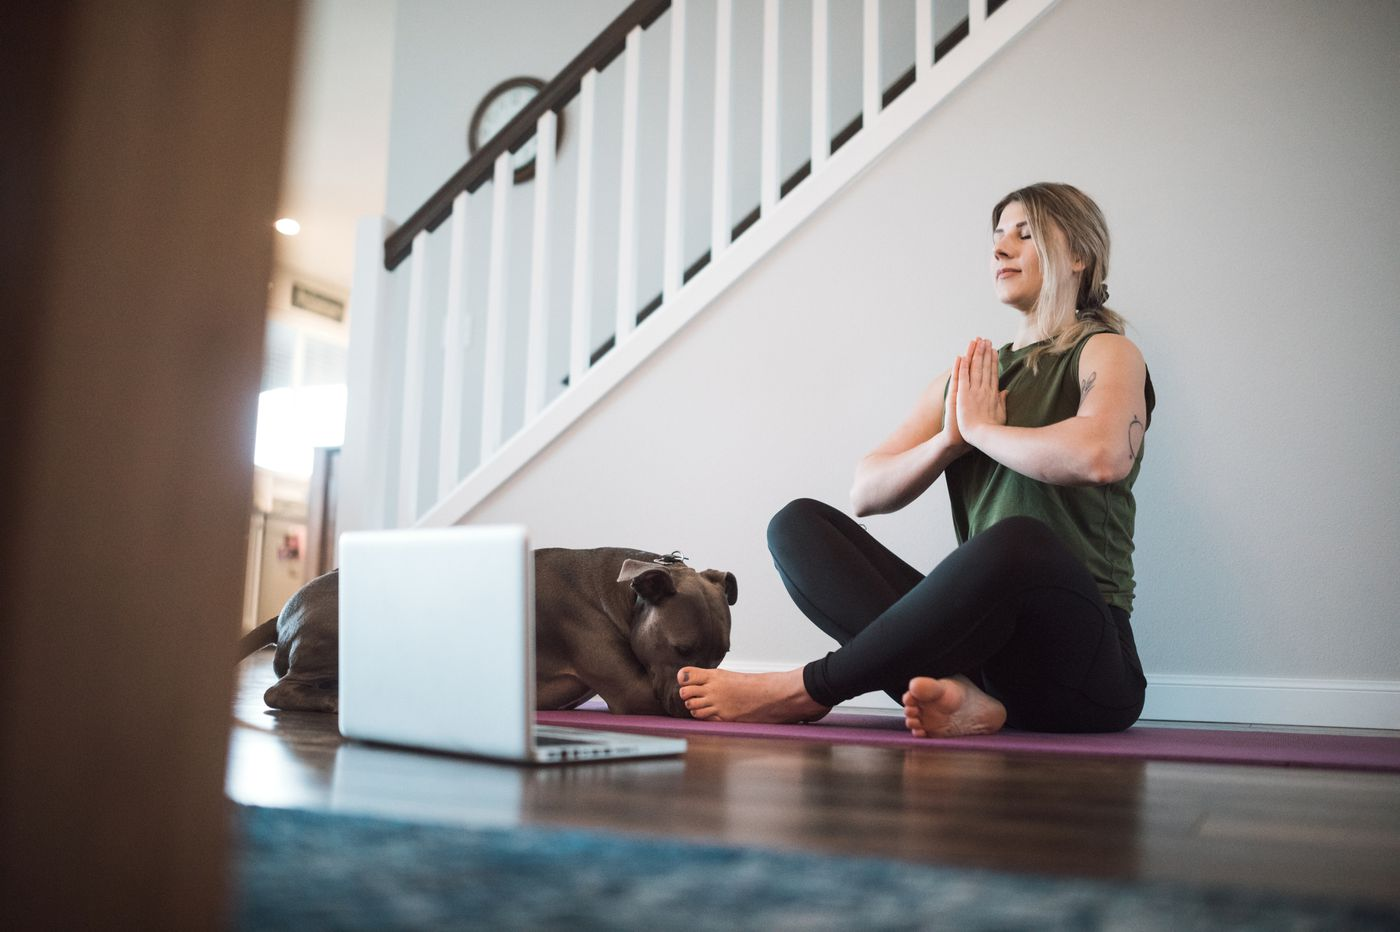 Meditation can help calm your pandemic worries. Here's how to start a practice at home.